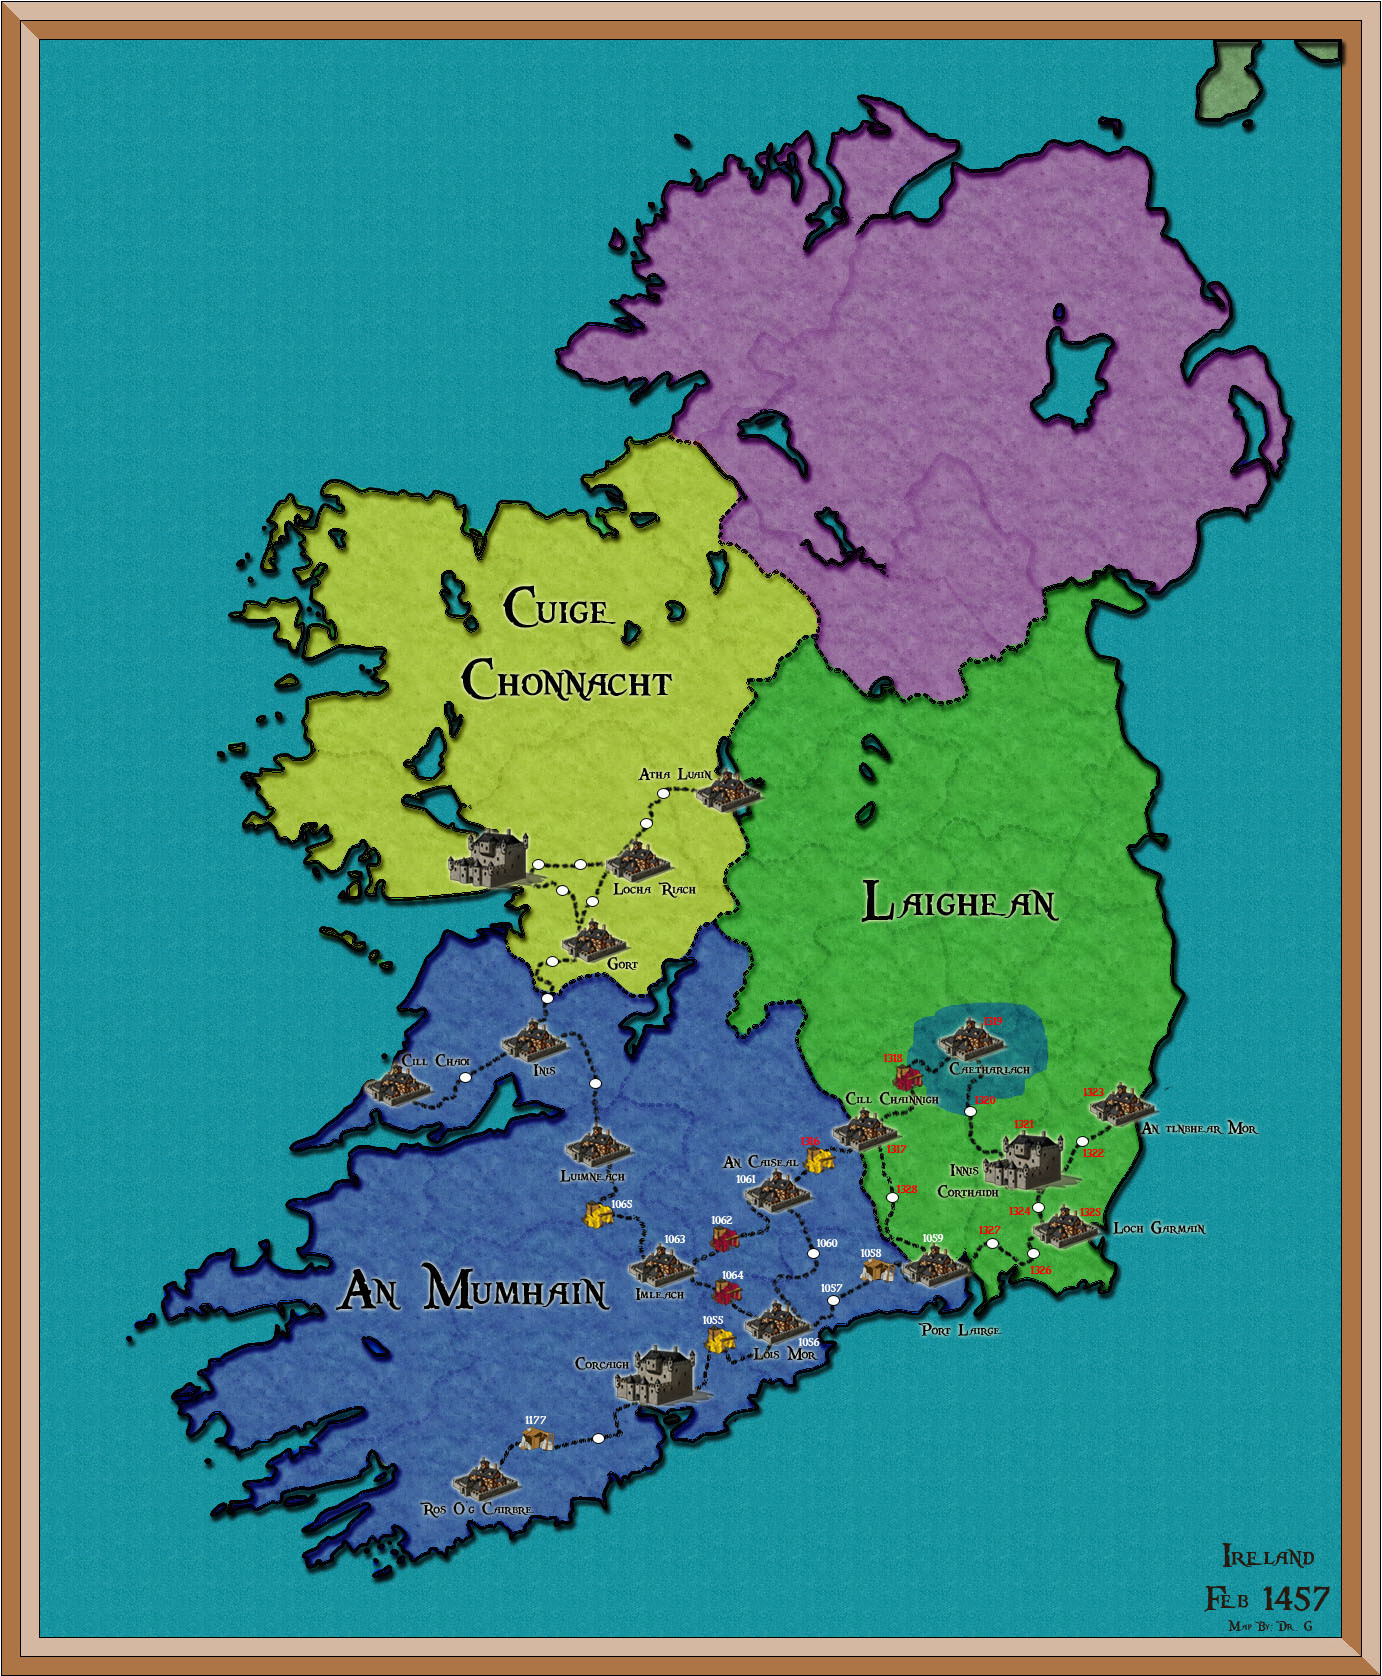 Map of Eire 1457 02.jpg